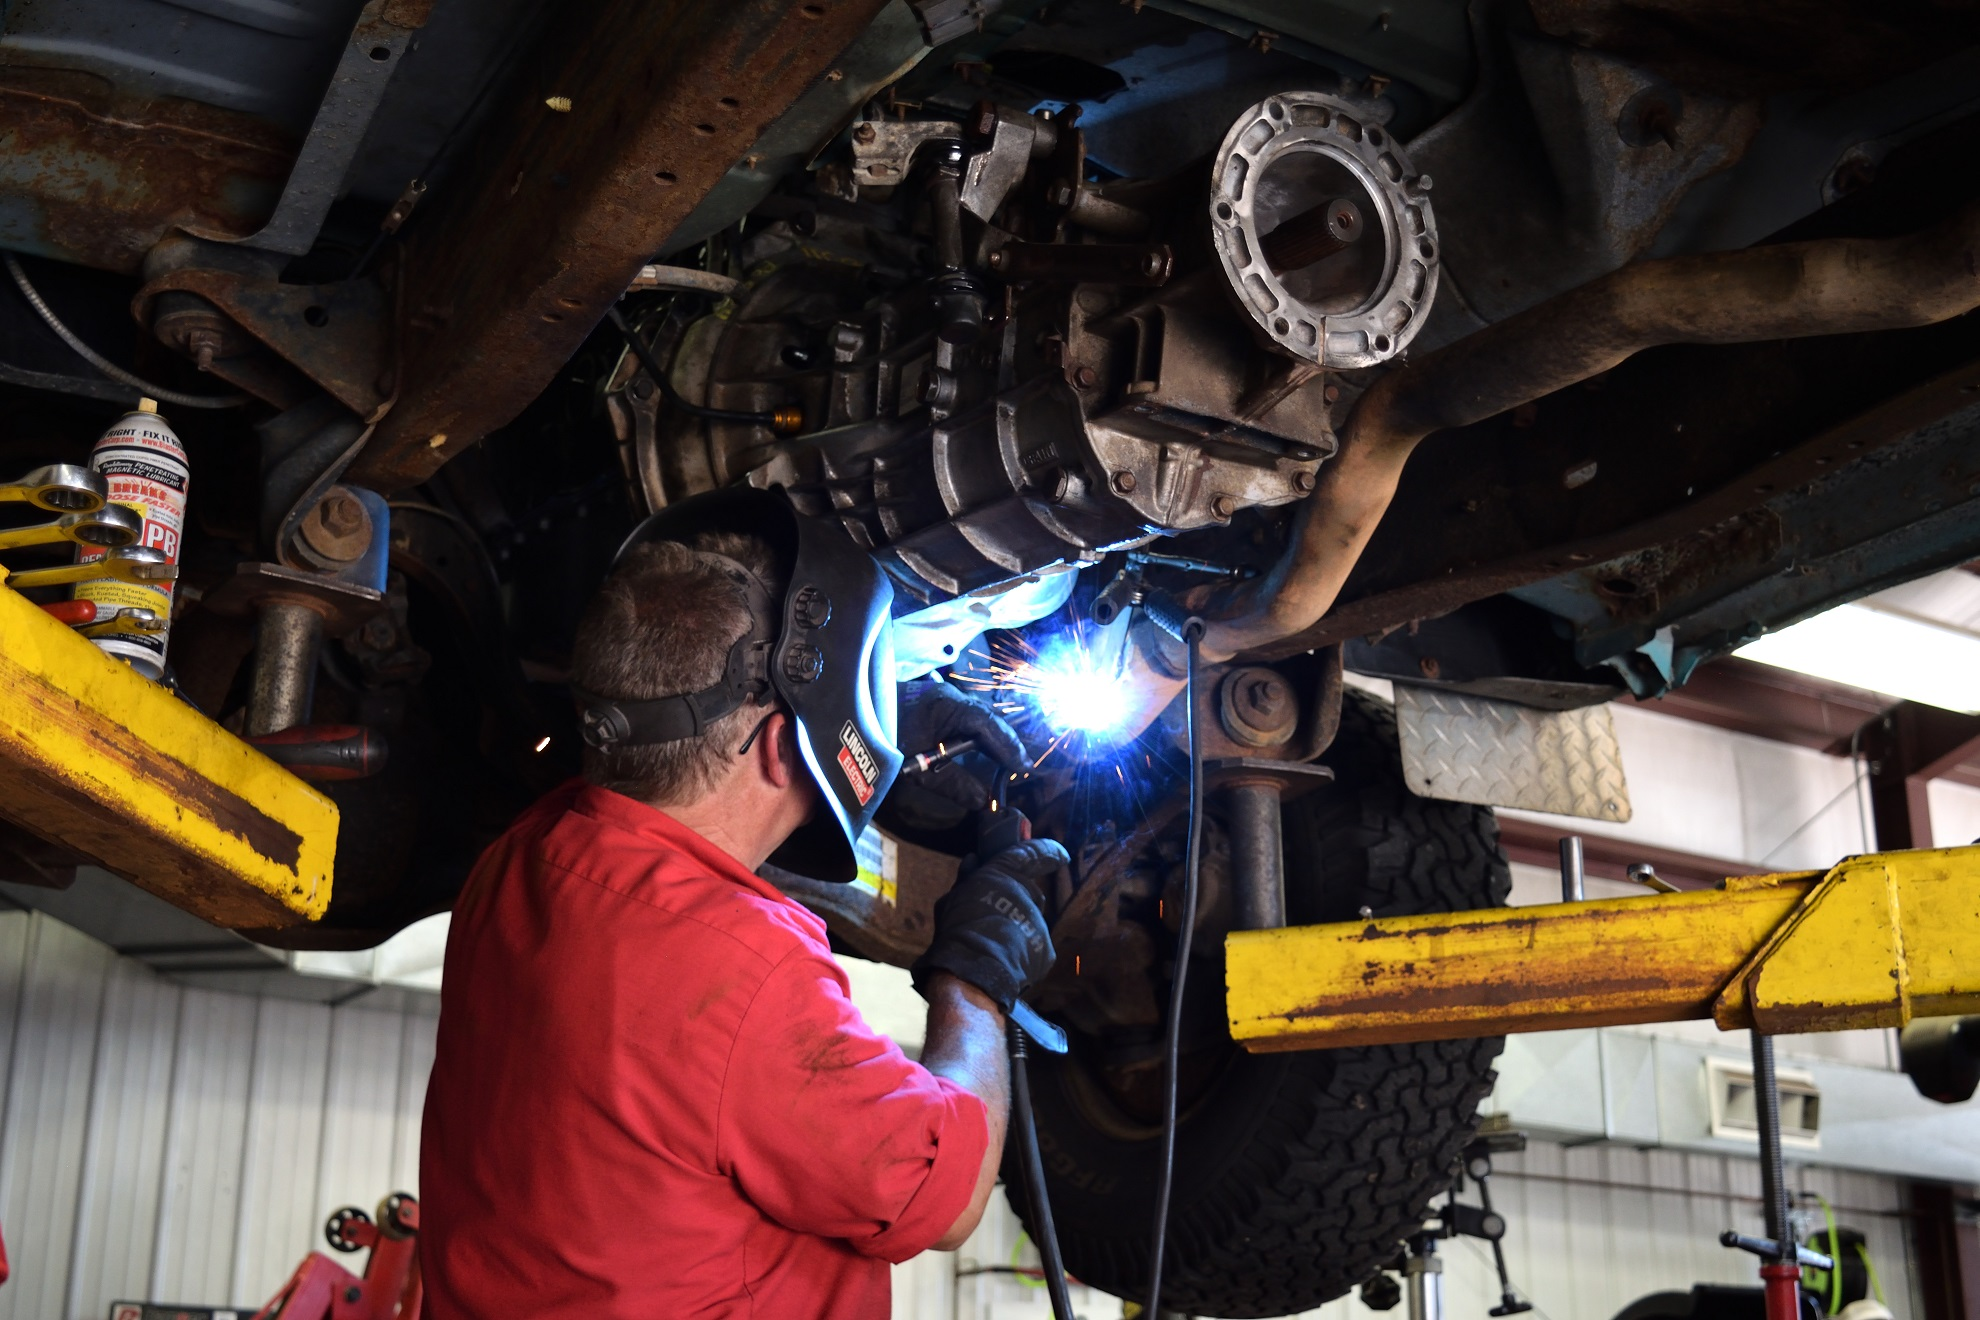 Automotive welding at Olin's Auto Service in Milton, WI